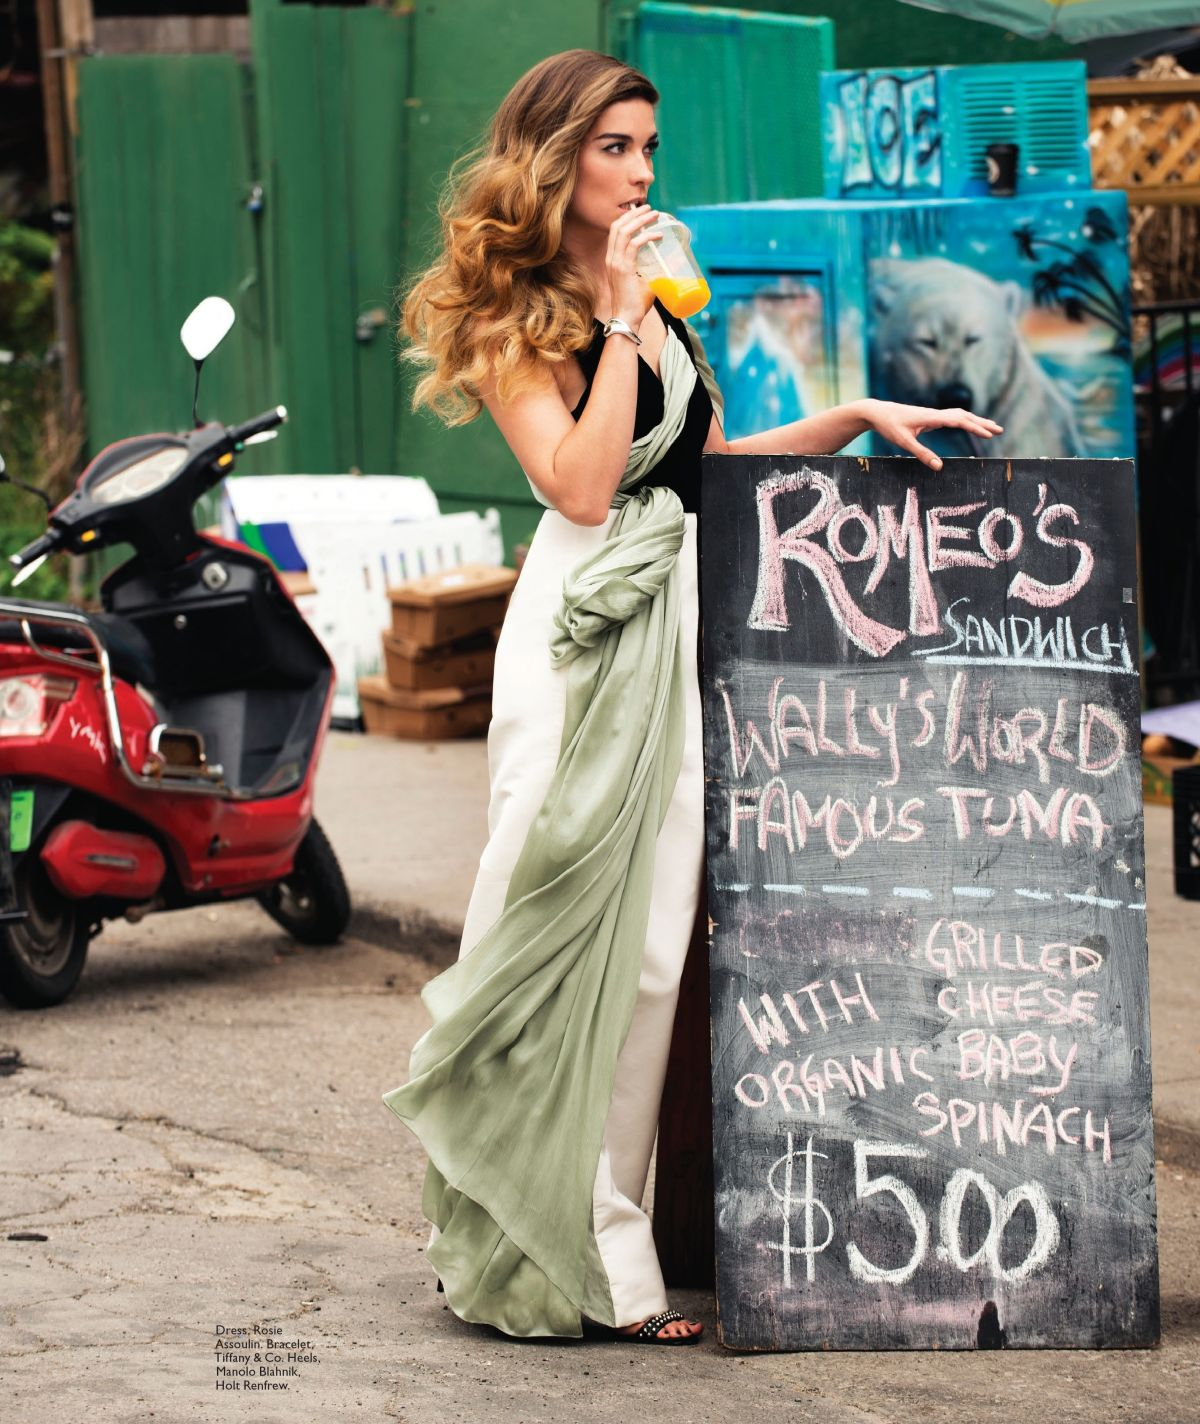 ANNIE MURPHY in Flare Magazine, September 2014 Issue